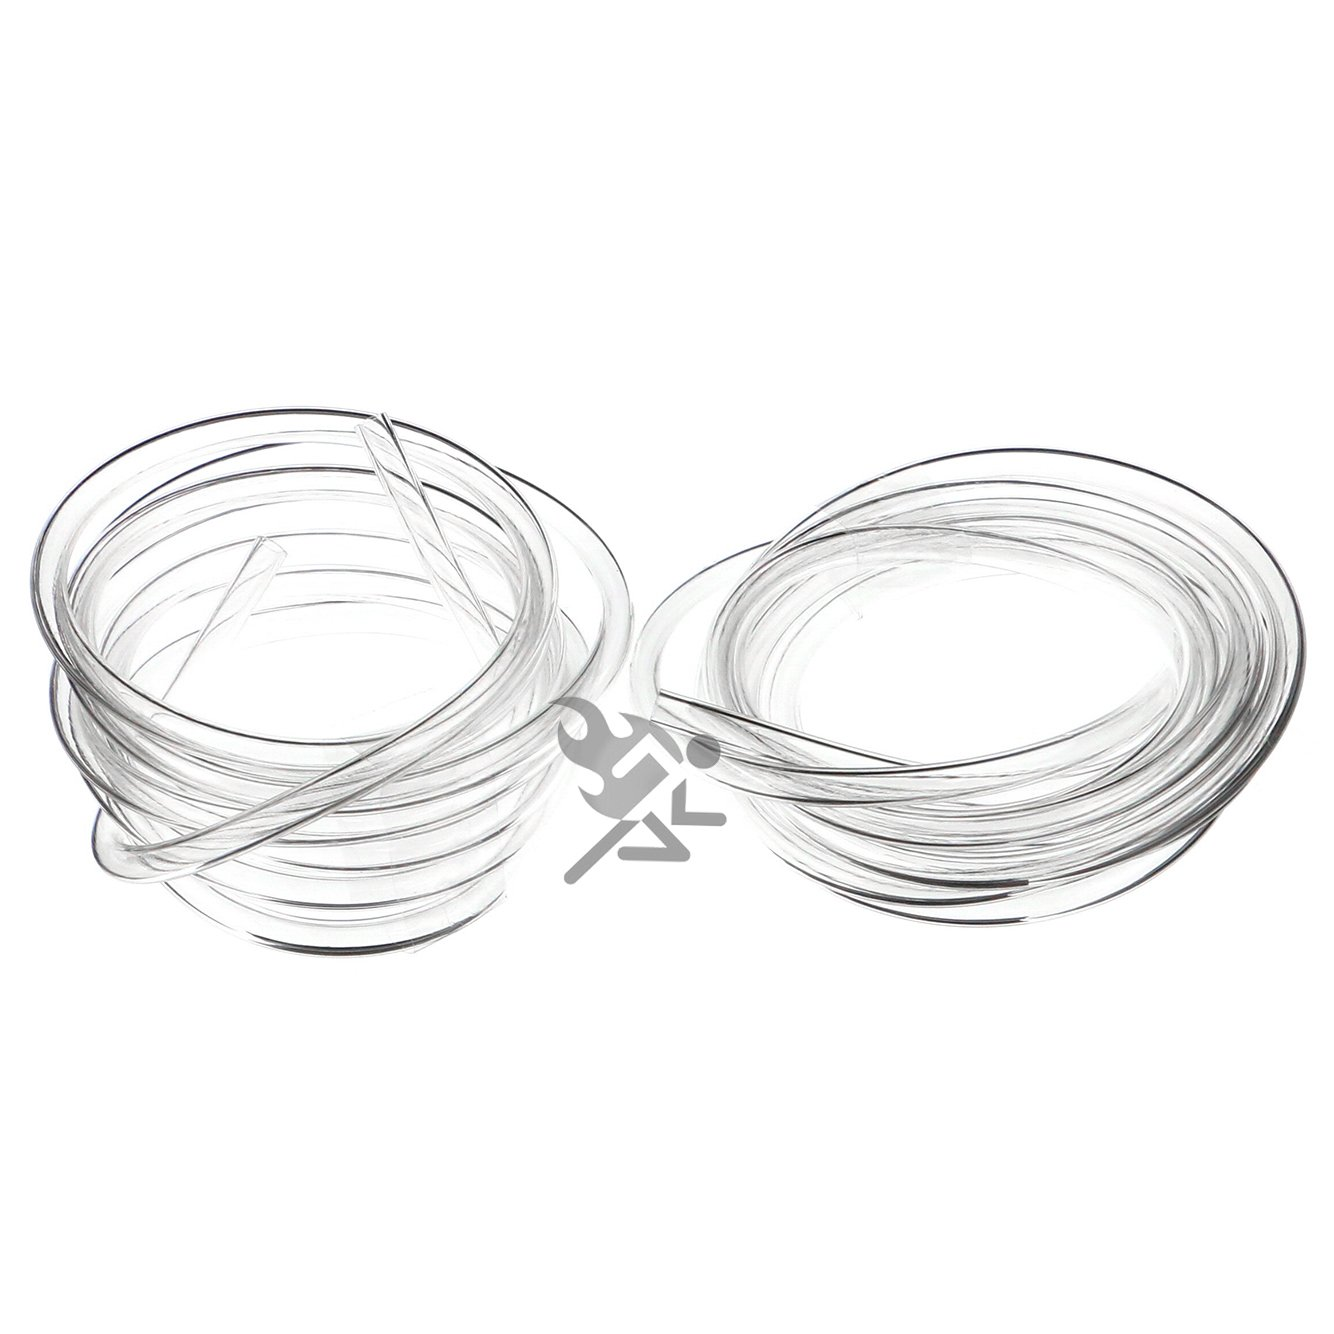 12 feet clear gas fuel line tubing go karts mini bikes scooters Go Kart Shocks 12 feet clear gas fuel line tubing go karts mini bikes scooters motorcycles 1 8 fittings amazon industrial scientific